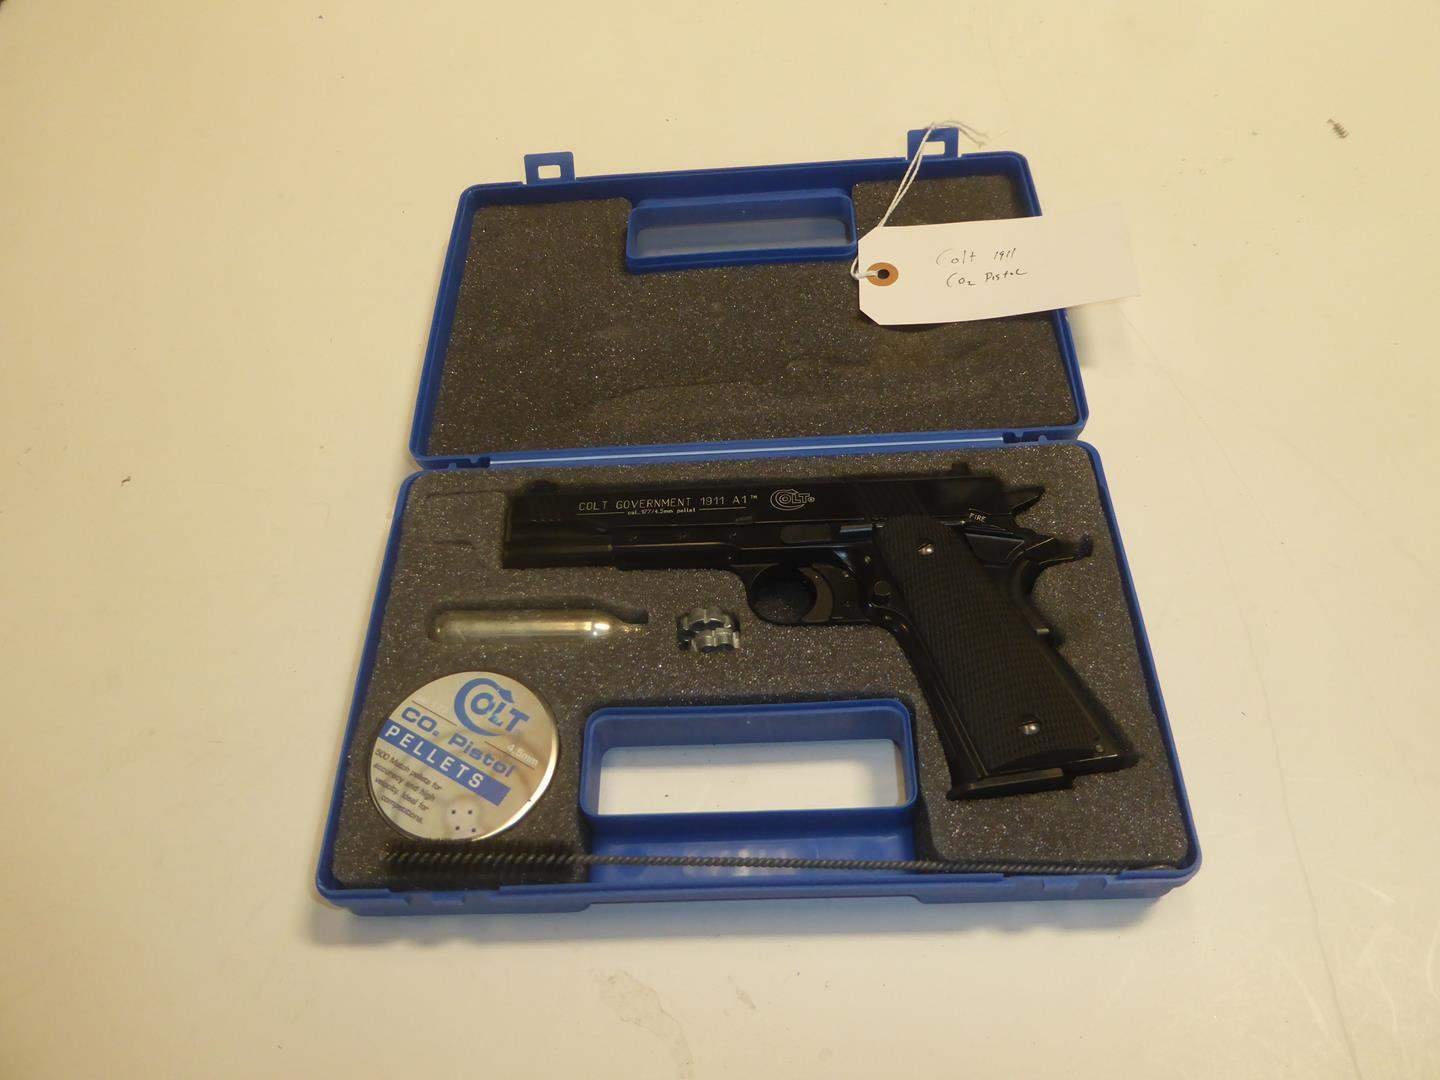 Lot # 97 - Colt Government 1911 A1 Co2 .177 Pellet Gun - Made in Germany (main image)